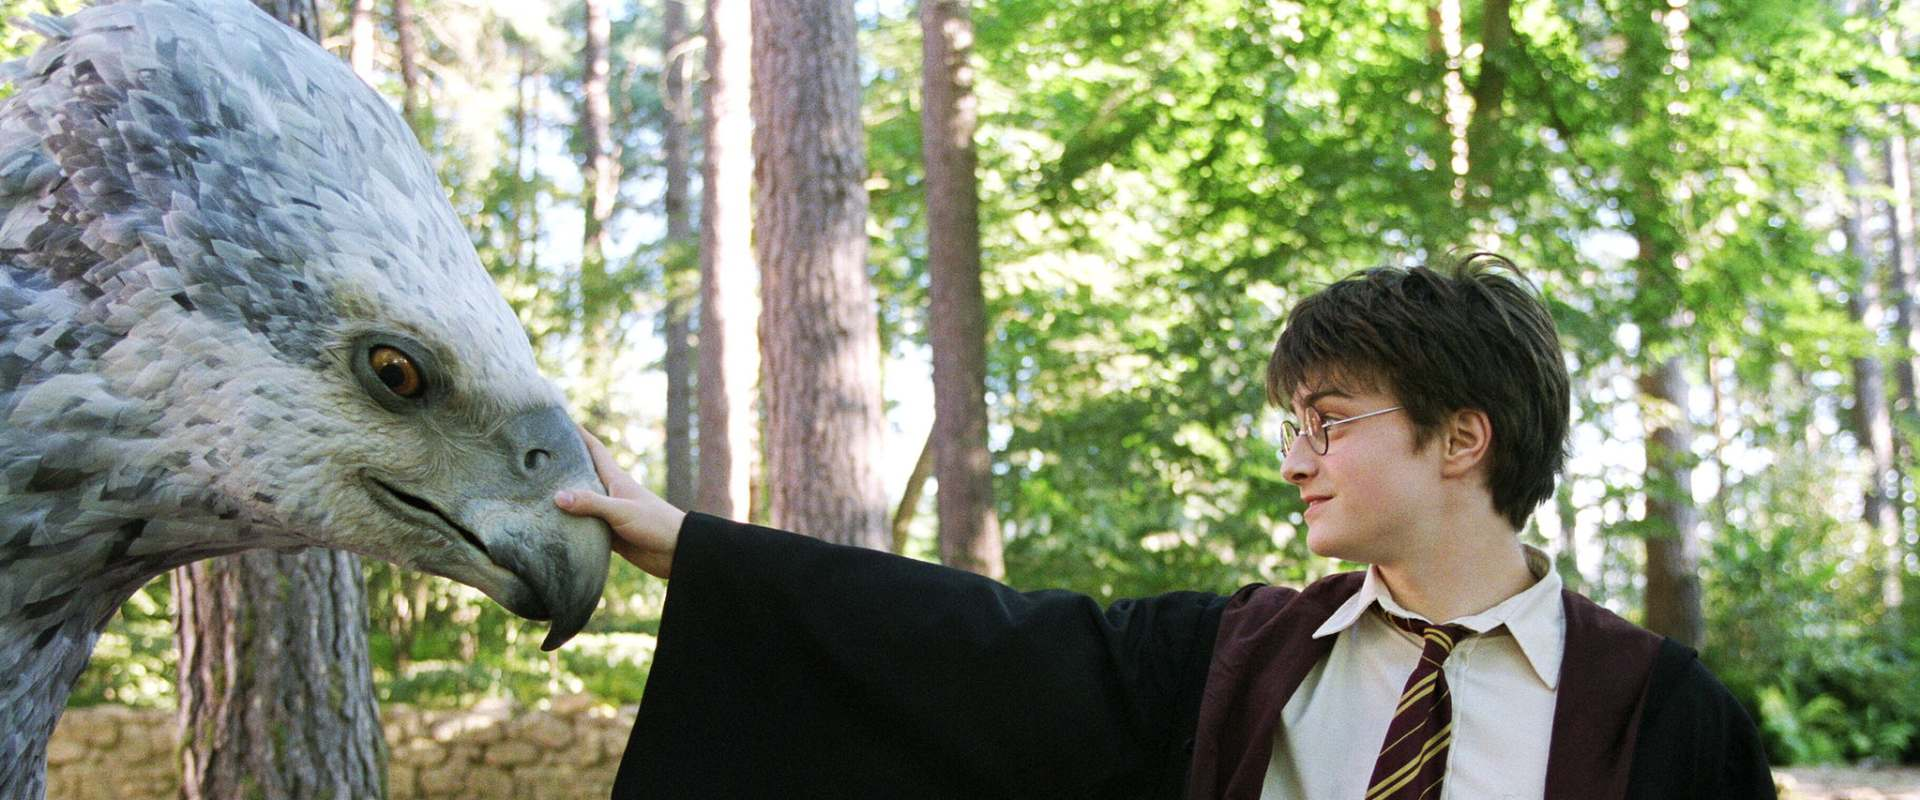 Harry Potter and the Prisoner of Azkaban background 2